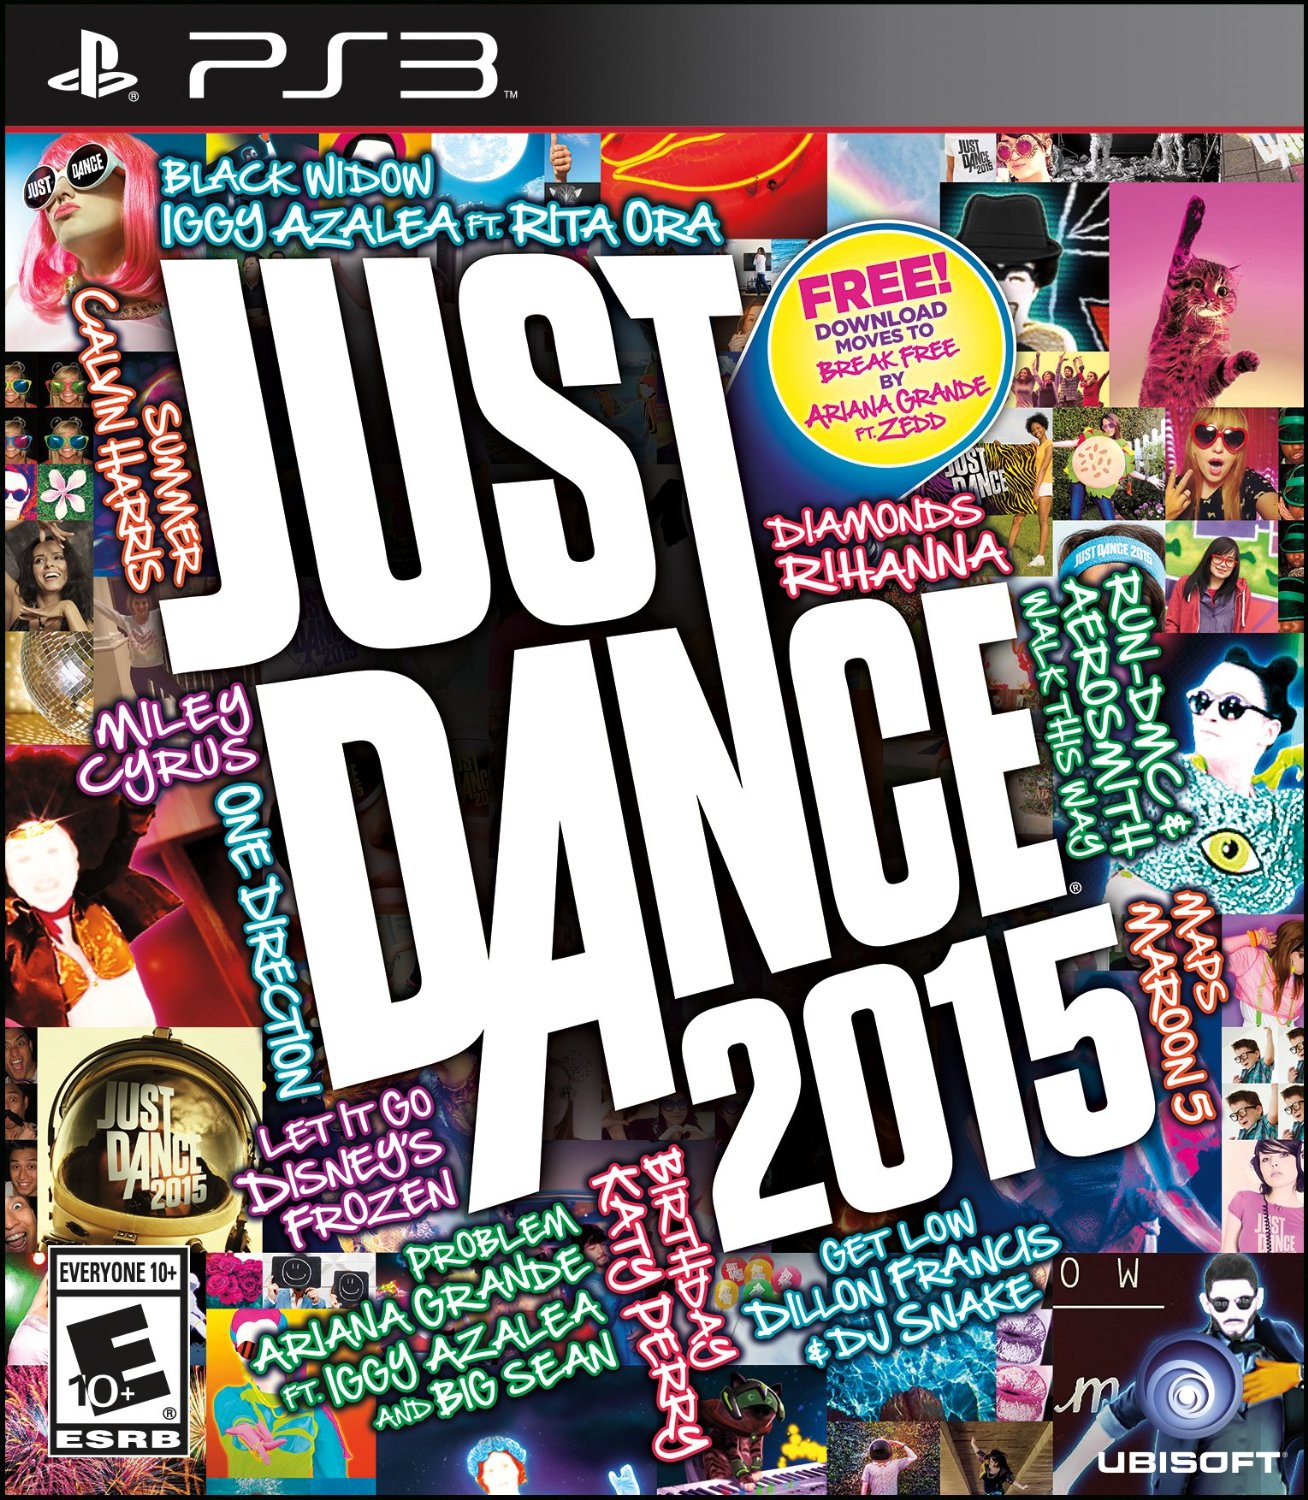 File:Ps32015cover.jpg